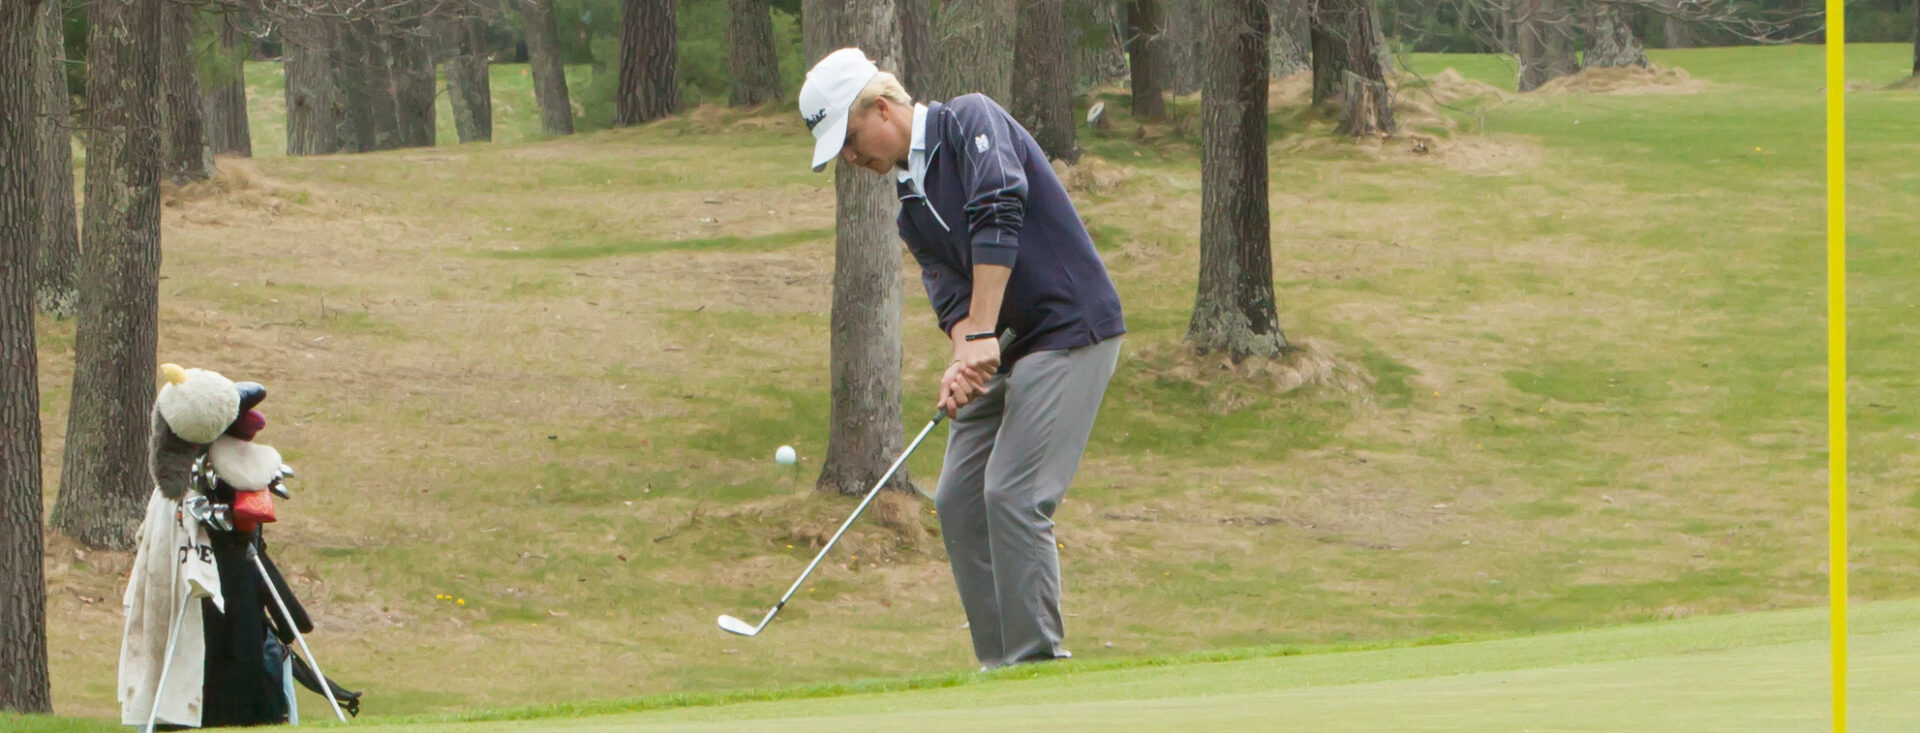 Soaring Mona Shores boys golf team ranked fifth in the state after strong finishes against other great teams